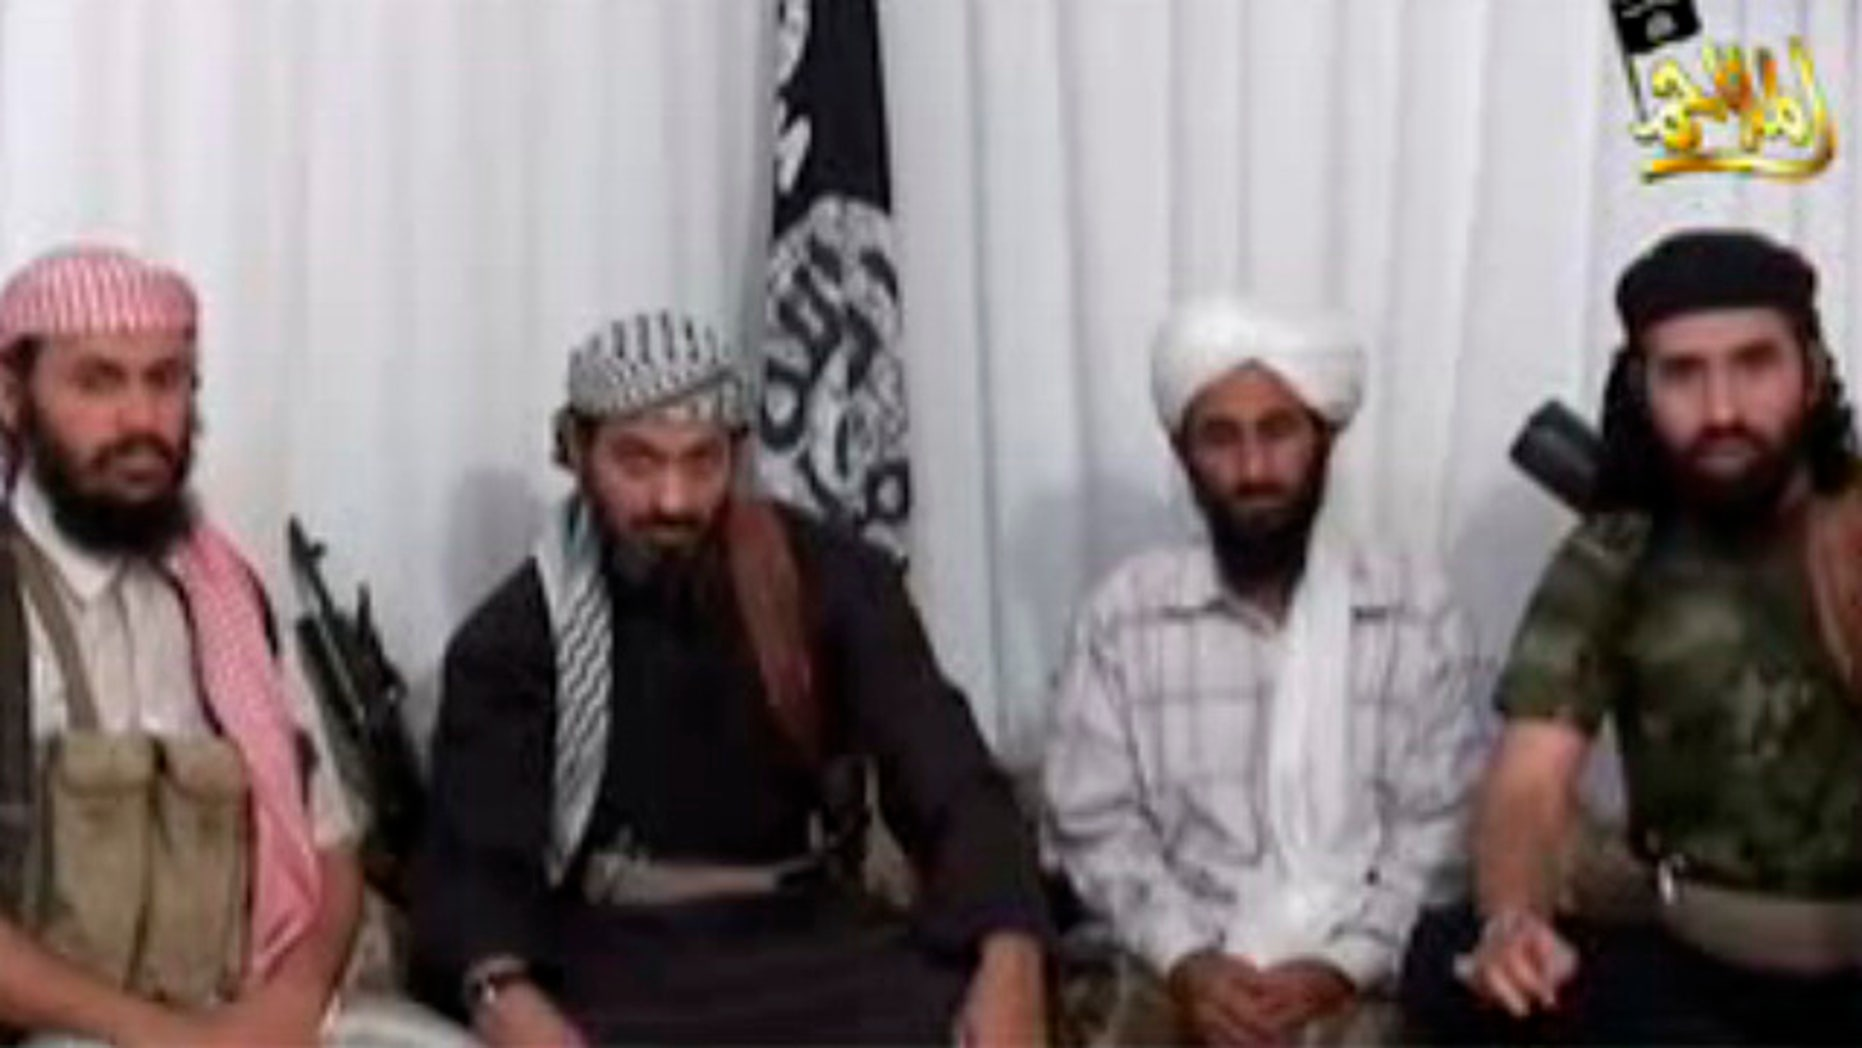 FILE:  Jan. 24, 2009. The leader of Al Qaeda in Yemen, Nasser al-Wahaishi, second from right, is surrounded by deputies in an Internet video.